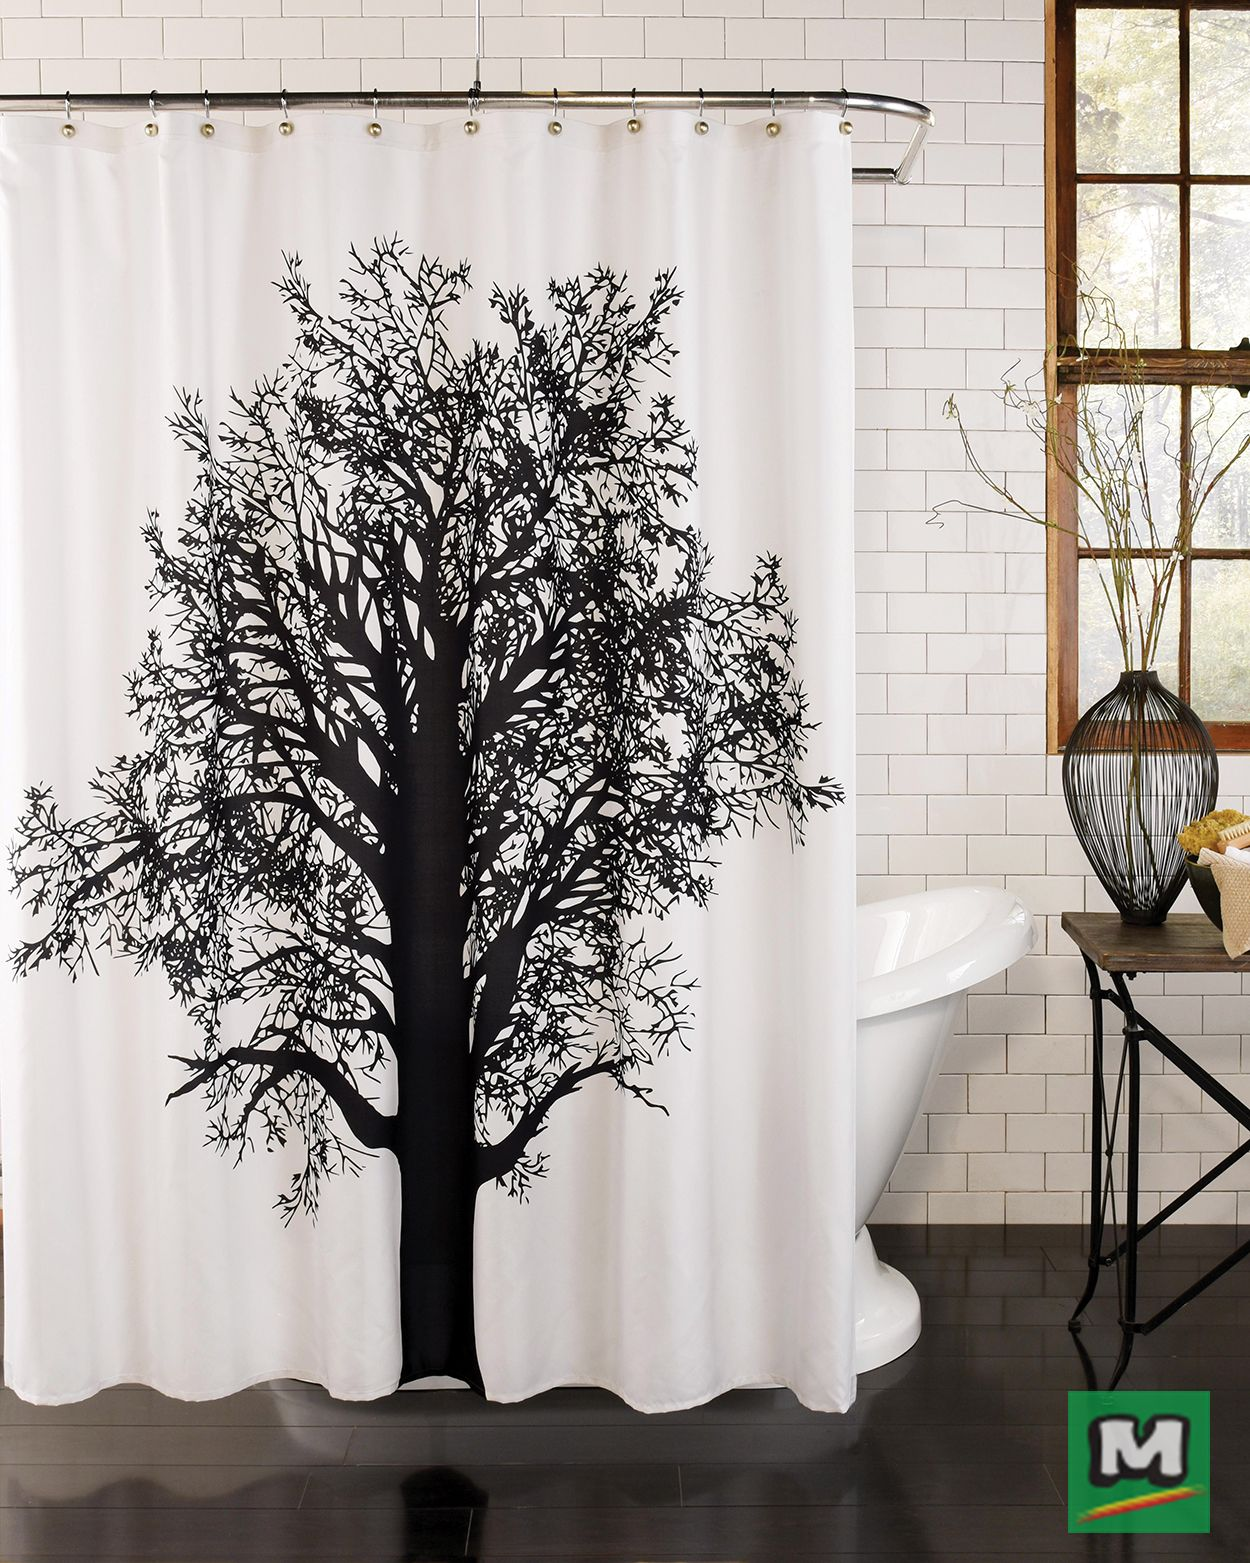 Complete The Look Of Your Bathroom With This Excel Home Fashions Tree Silhouette Fabric Shower Curtain Simple Botanical Design Will Add Perfect